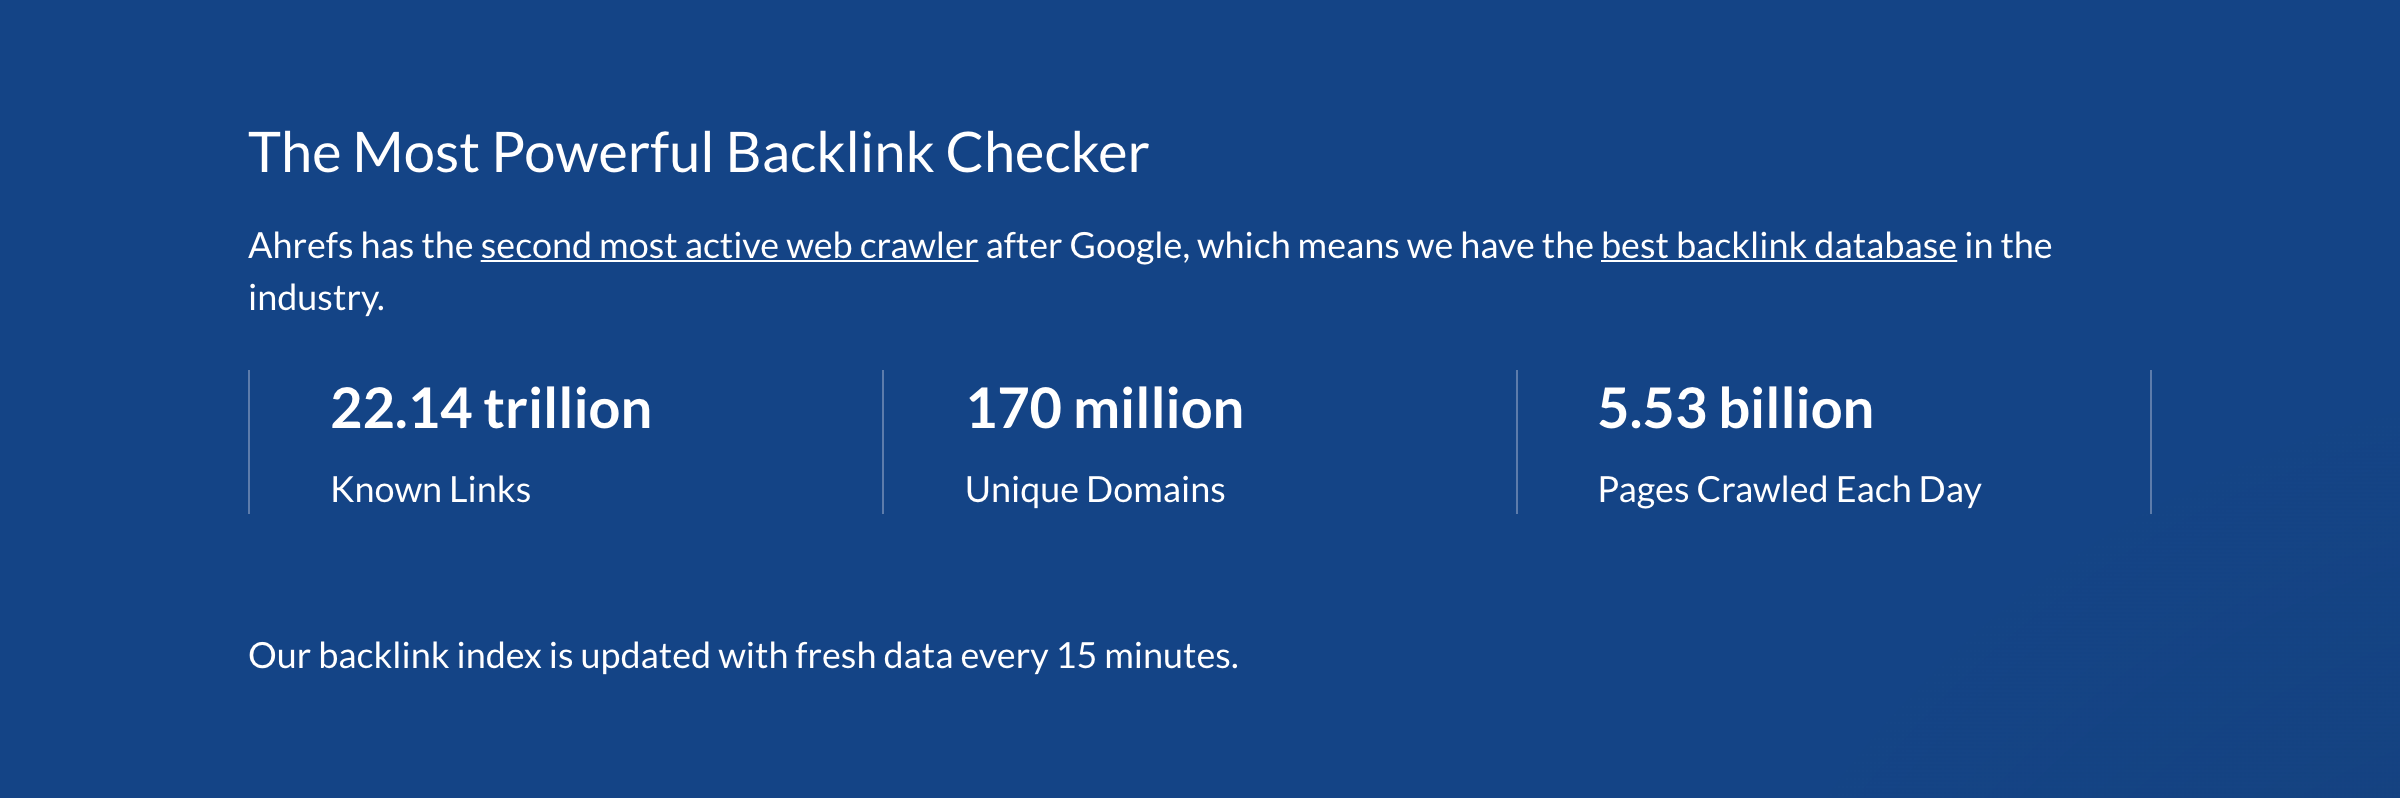 Ahrefs Backlink Checker Stats